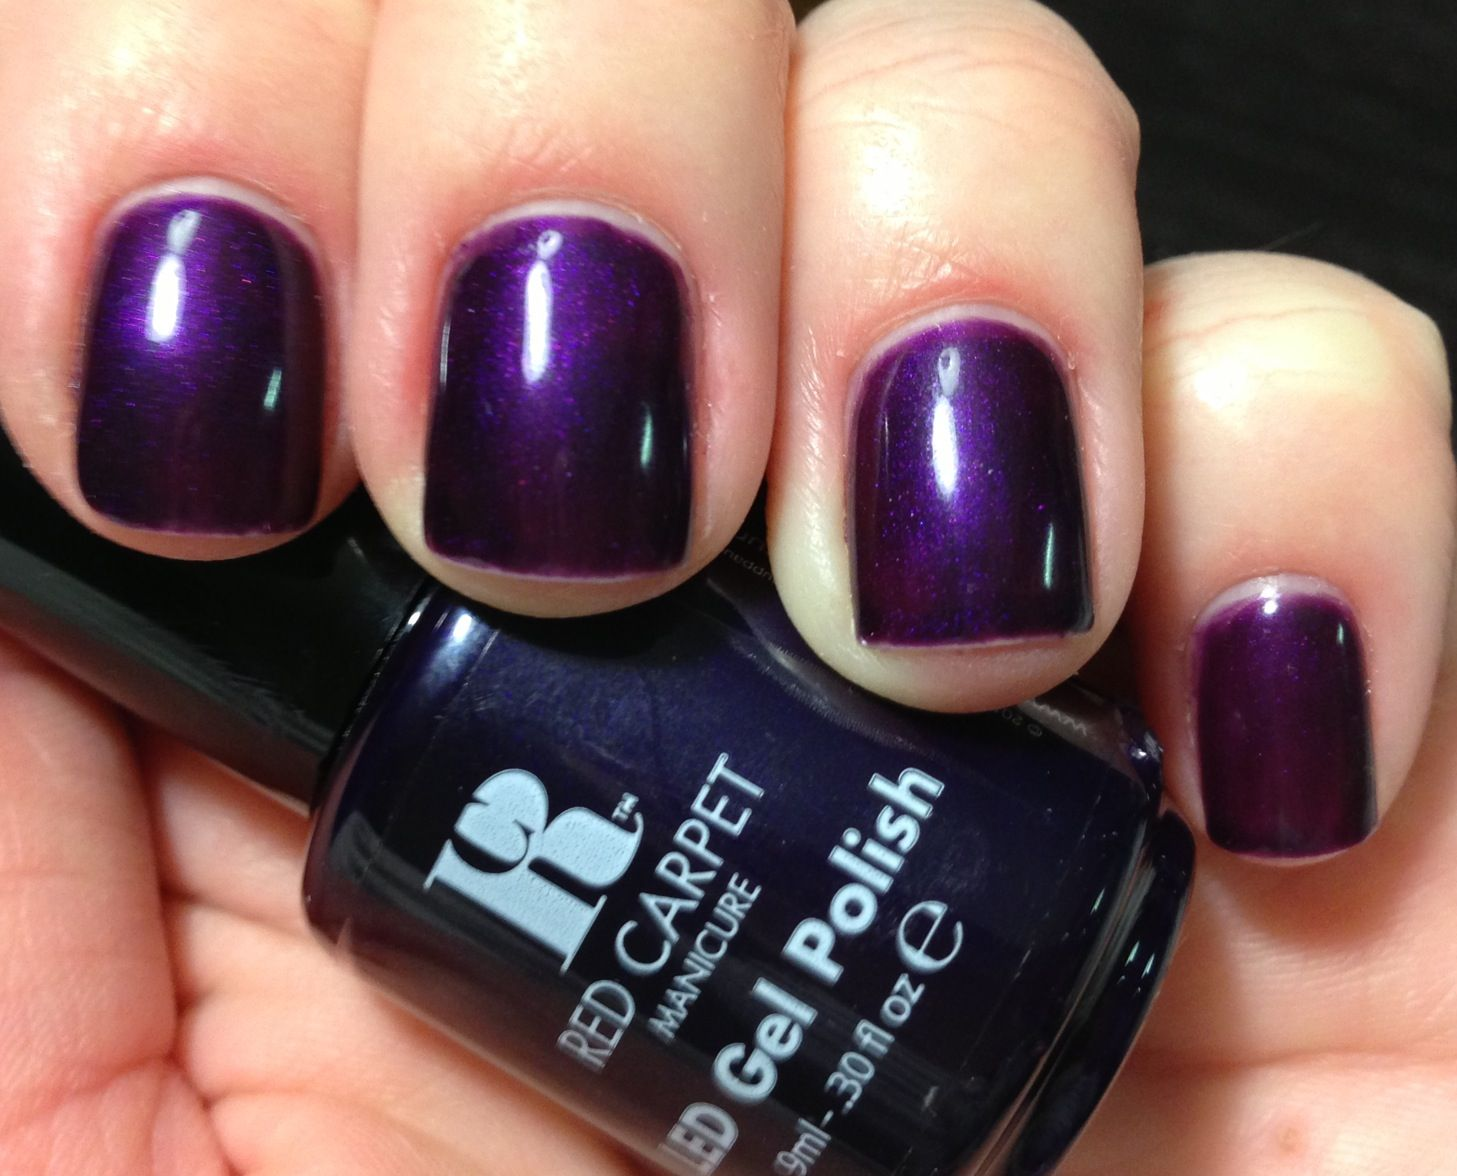 Nails inc gel nail colors and gel nail polish on pinterest - Red Carpet Manicure Led Gelpolish In Nominated For Gelish Nailsgel